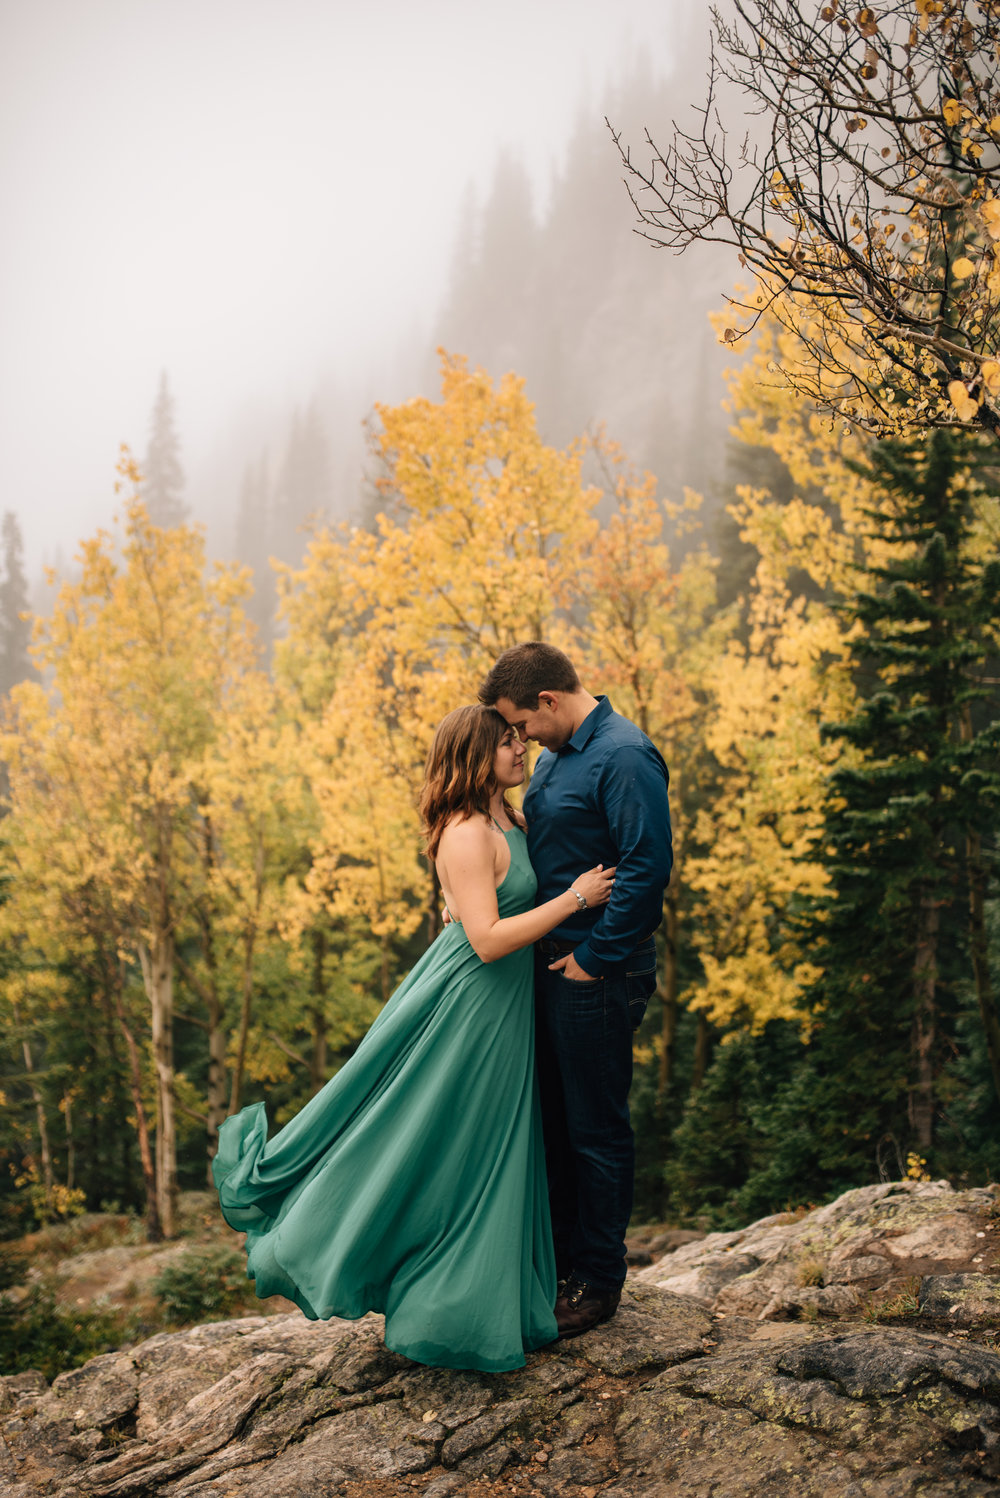 Breckenridge, Colorado adventure elopement.